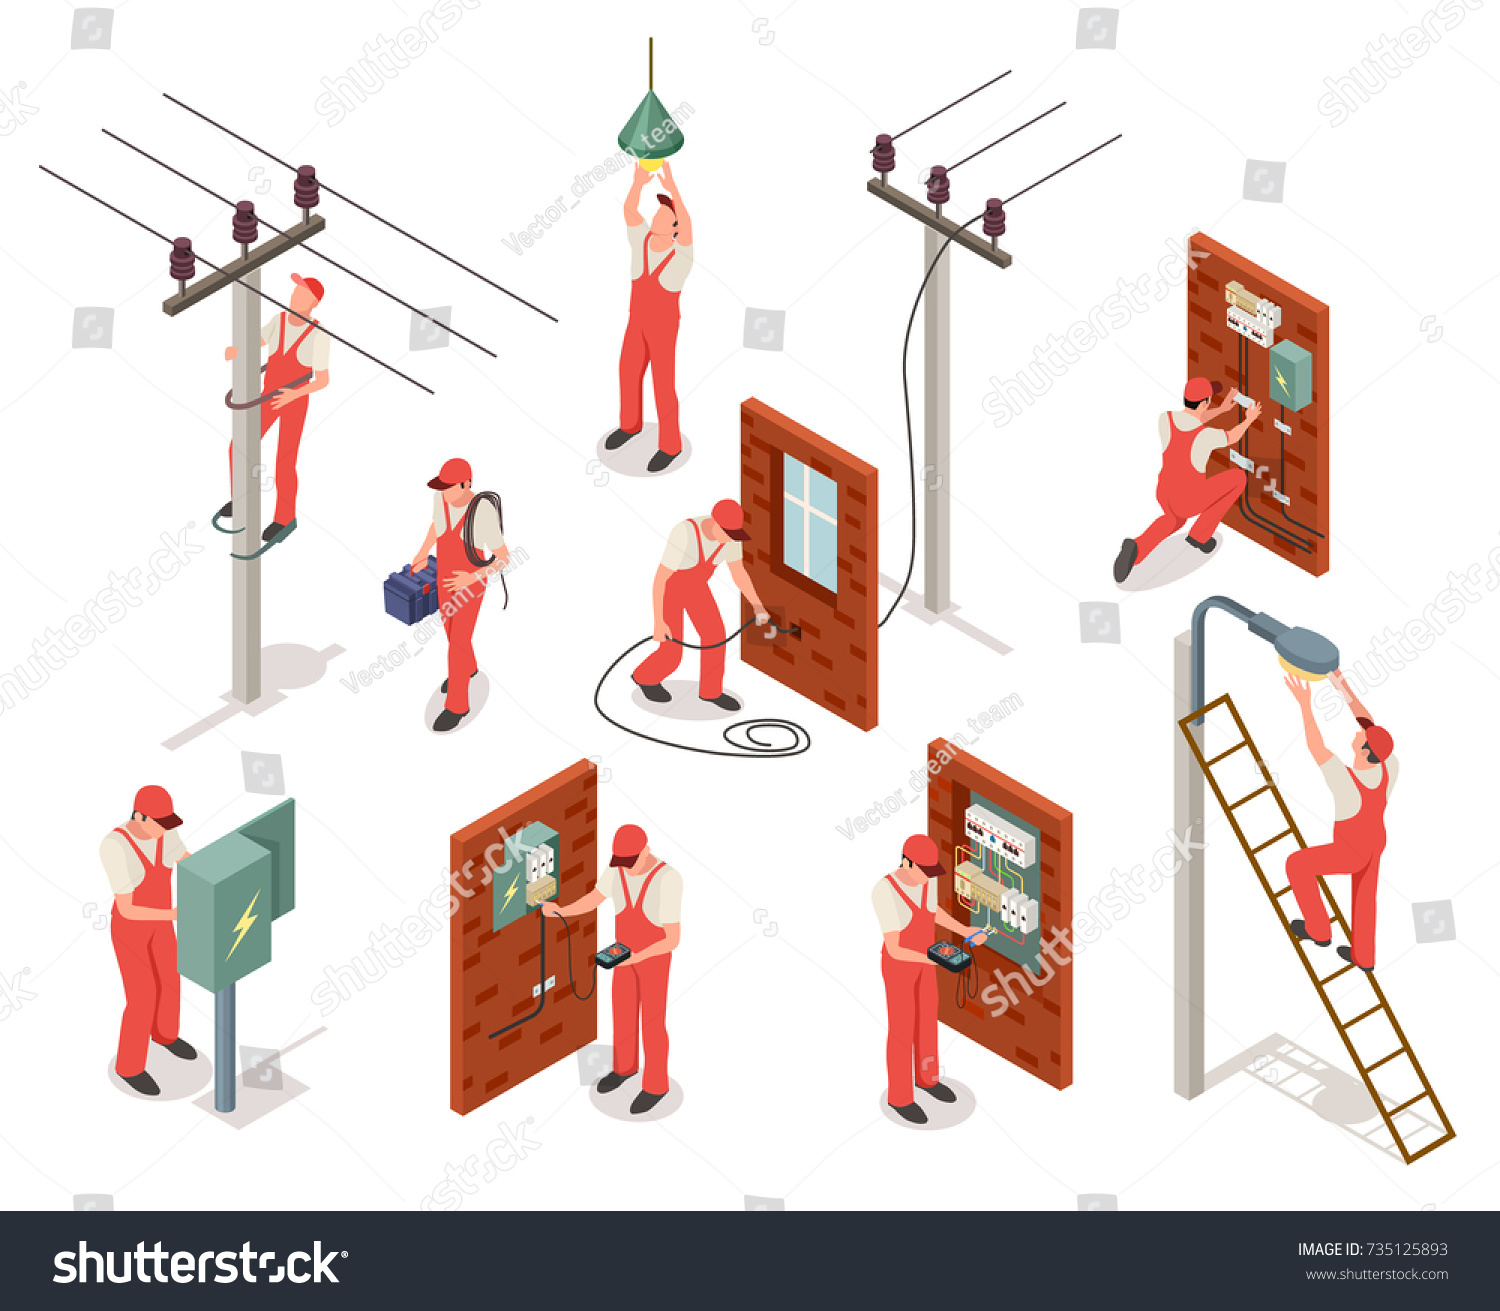 Electrician Red Uniform Works Wires Electrical Stock Vector ...